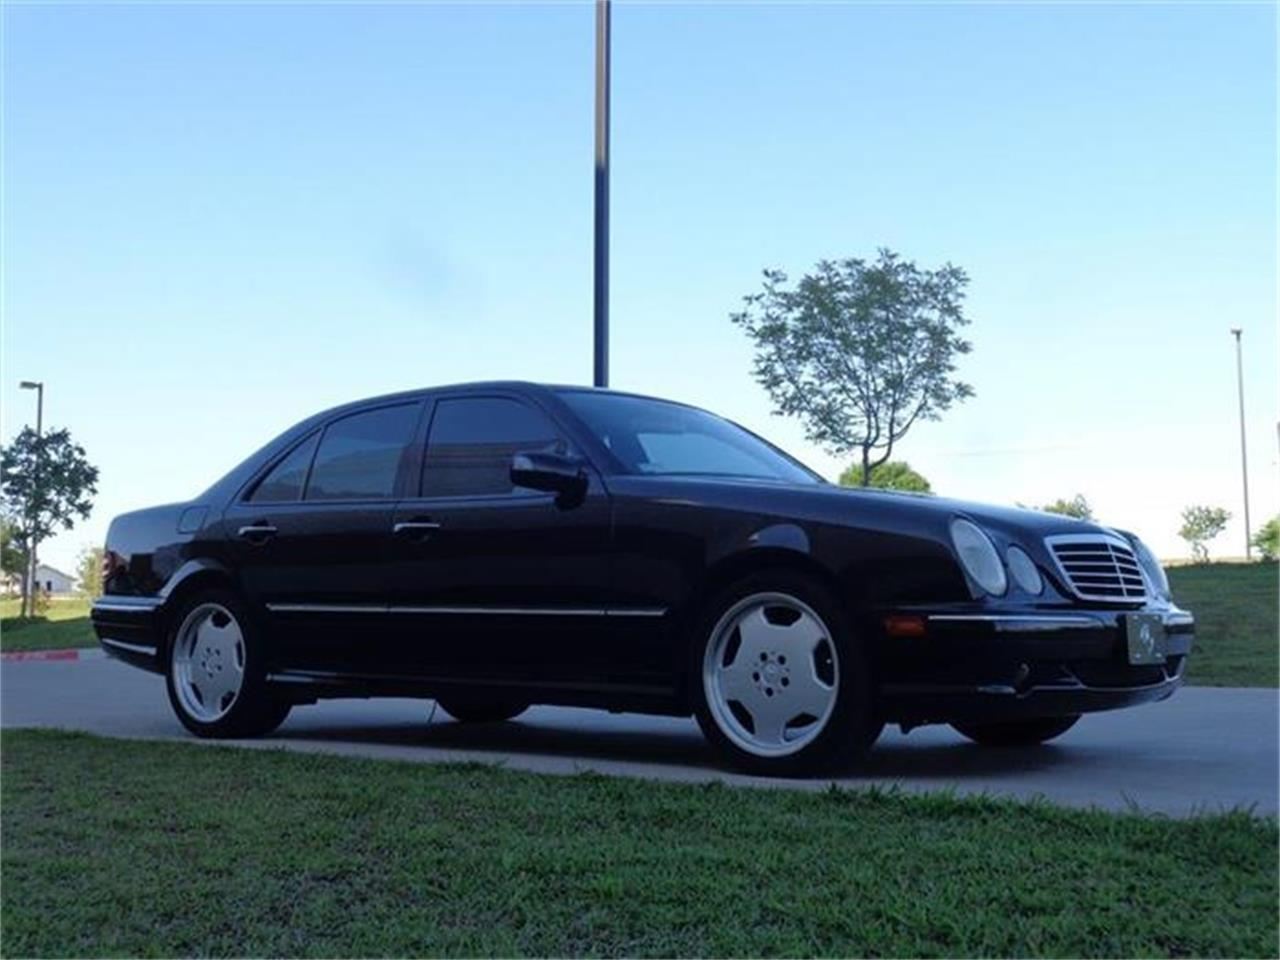 Large Picture of 2001 Mercedes-Benz E55 located in Rowlett Texas - $12,200.00 Offered by Enthusiast Motor Cars of Texas - HUJ9